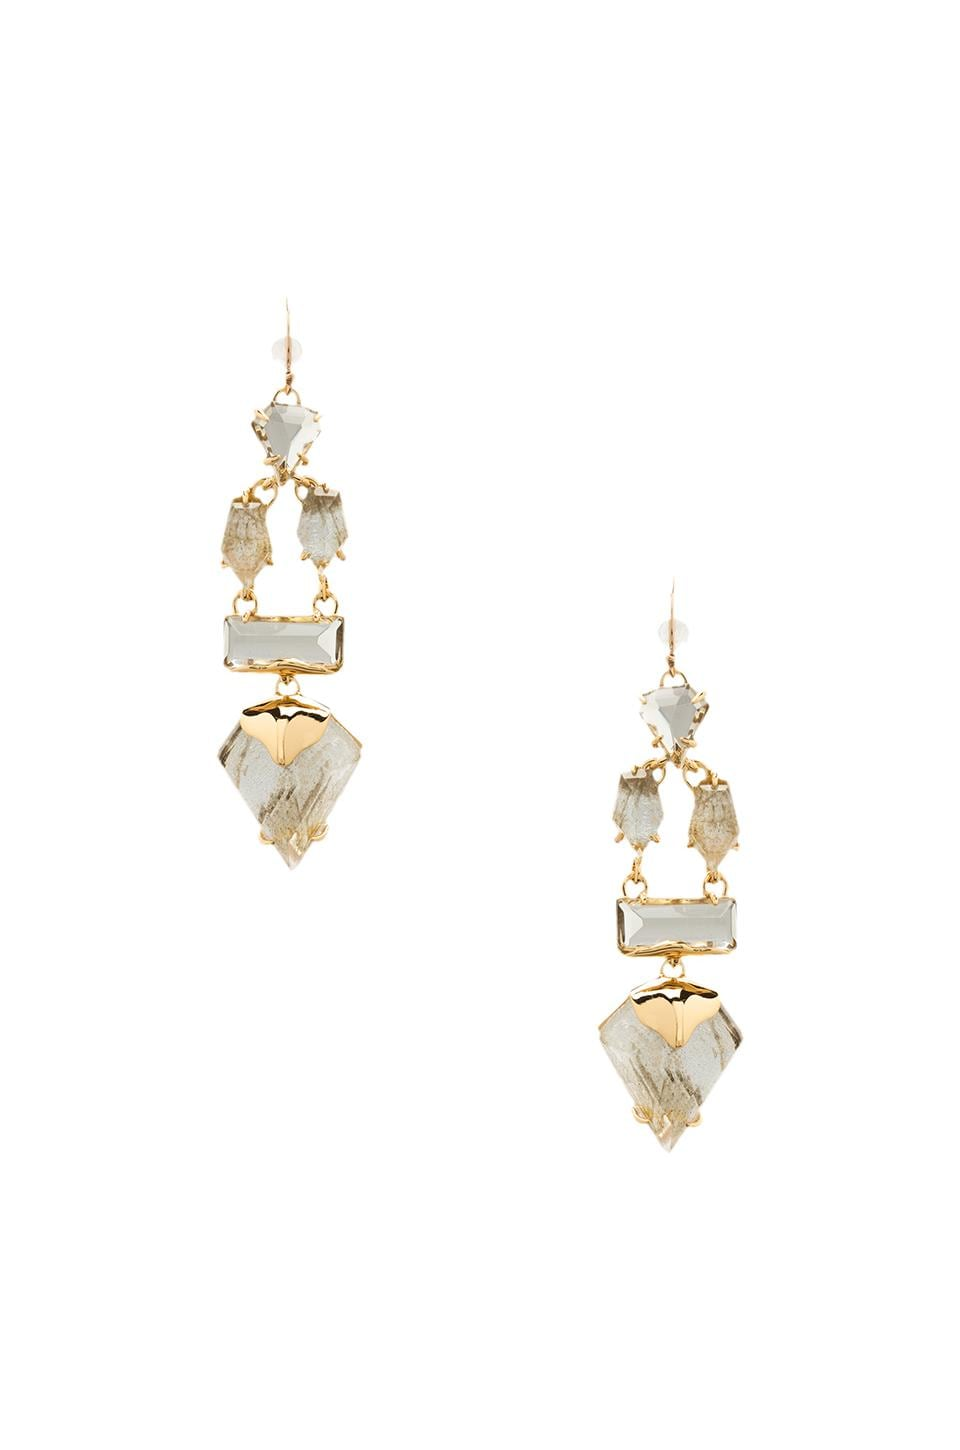 Alexis Bittar Dangling Rigel Wire Earring in Doublet